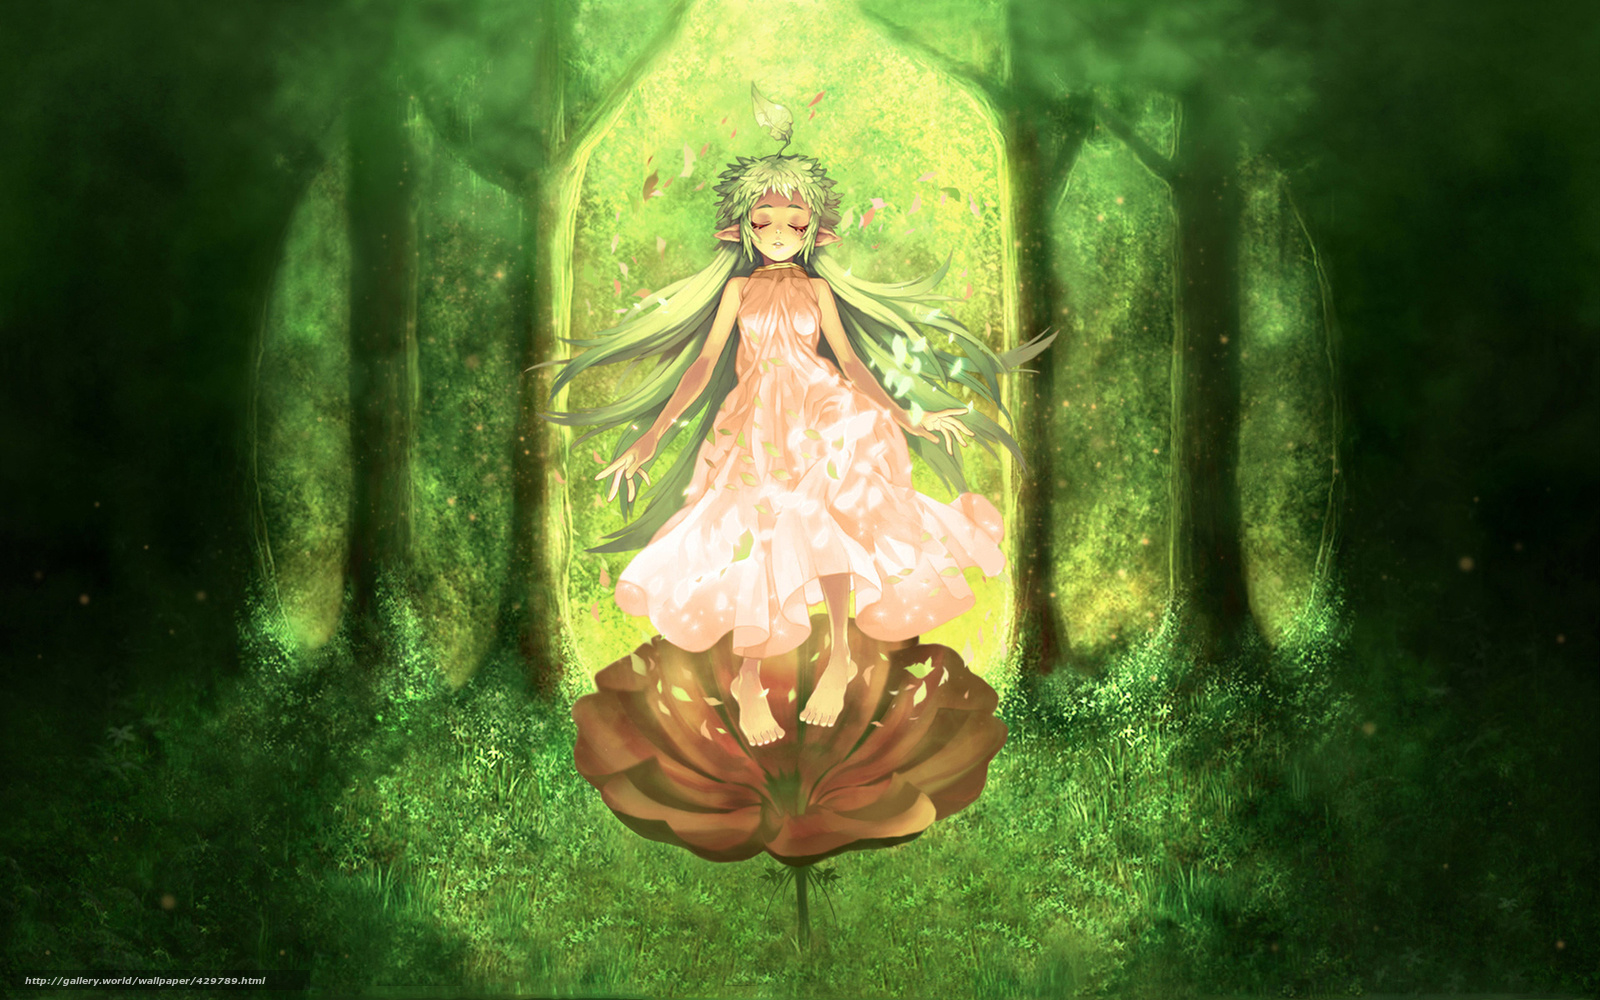 Anime elf girl in forest porno clips